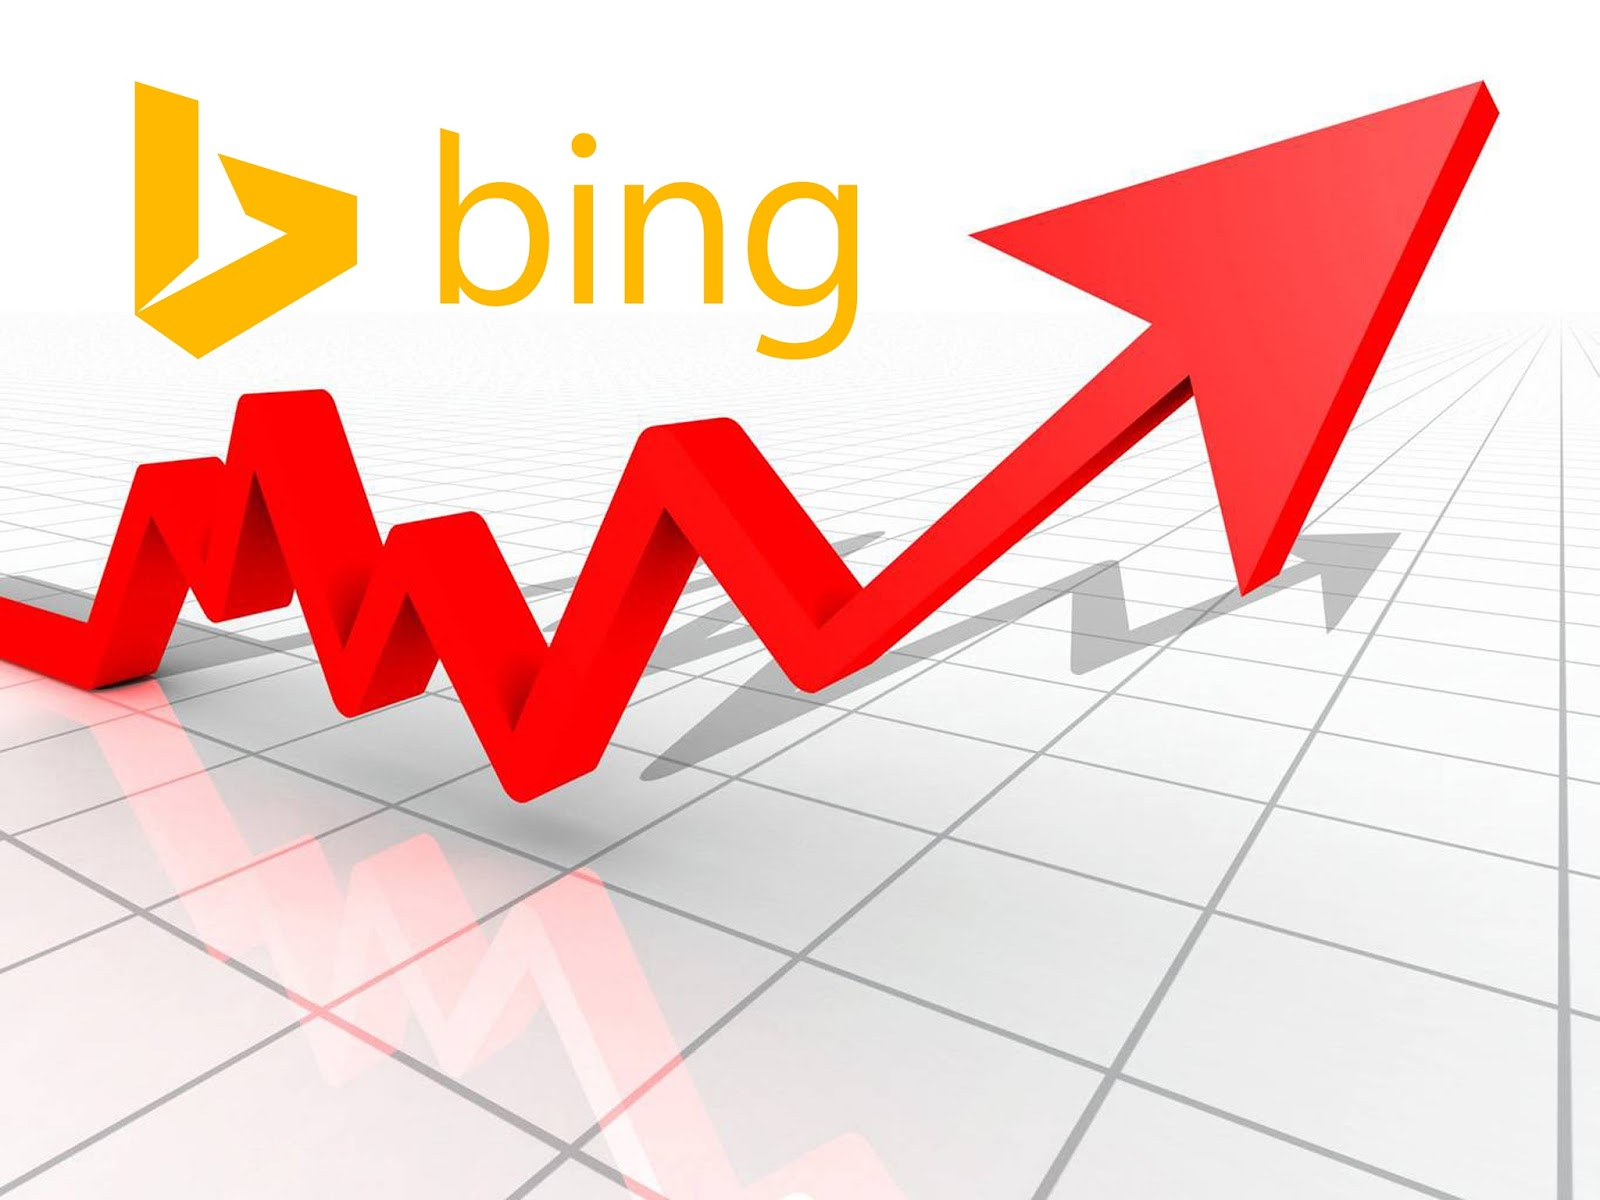 Bing Search & Ad Revenue Growth: The Search Engine Crosses Breakeven Point 1